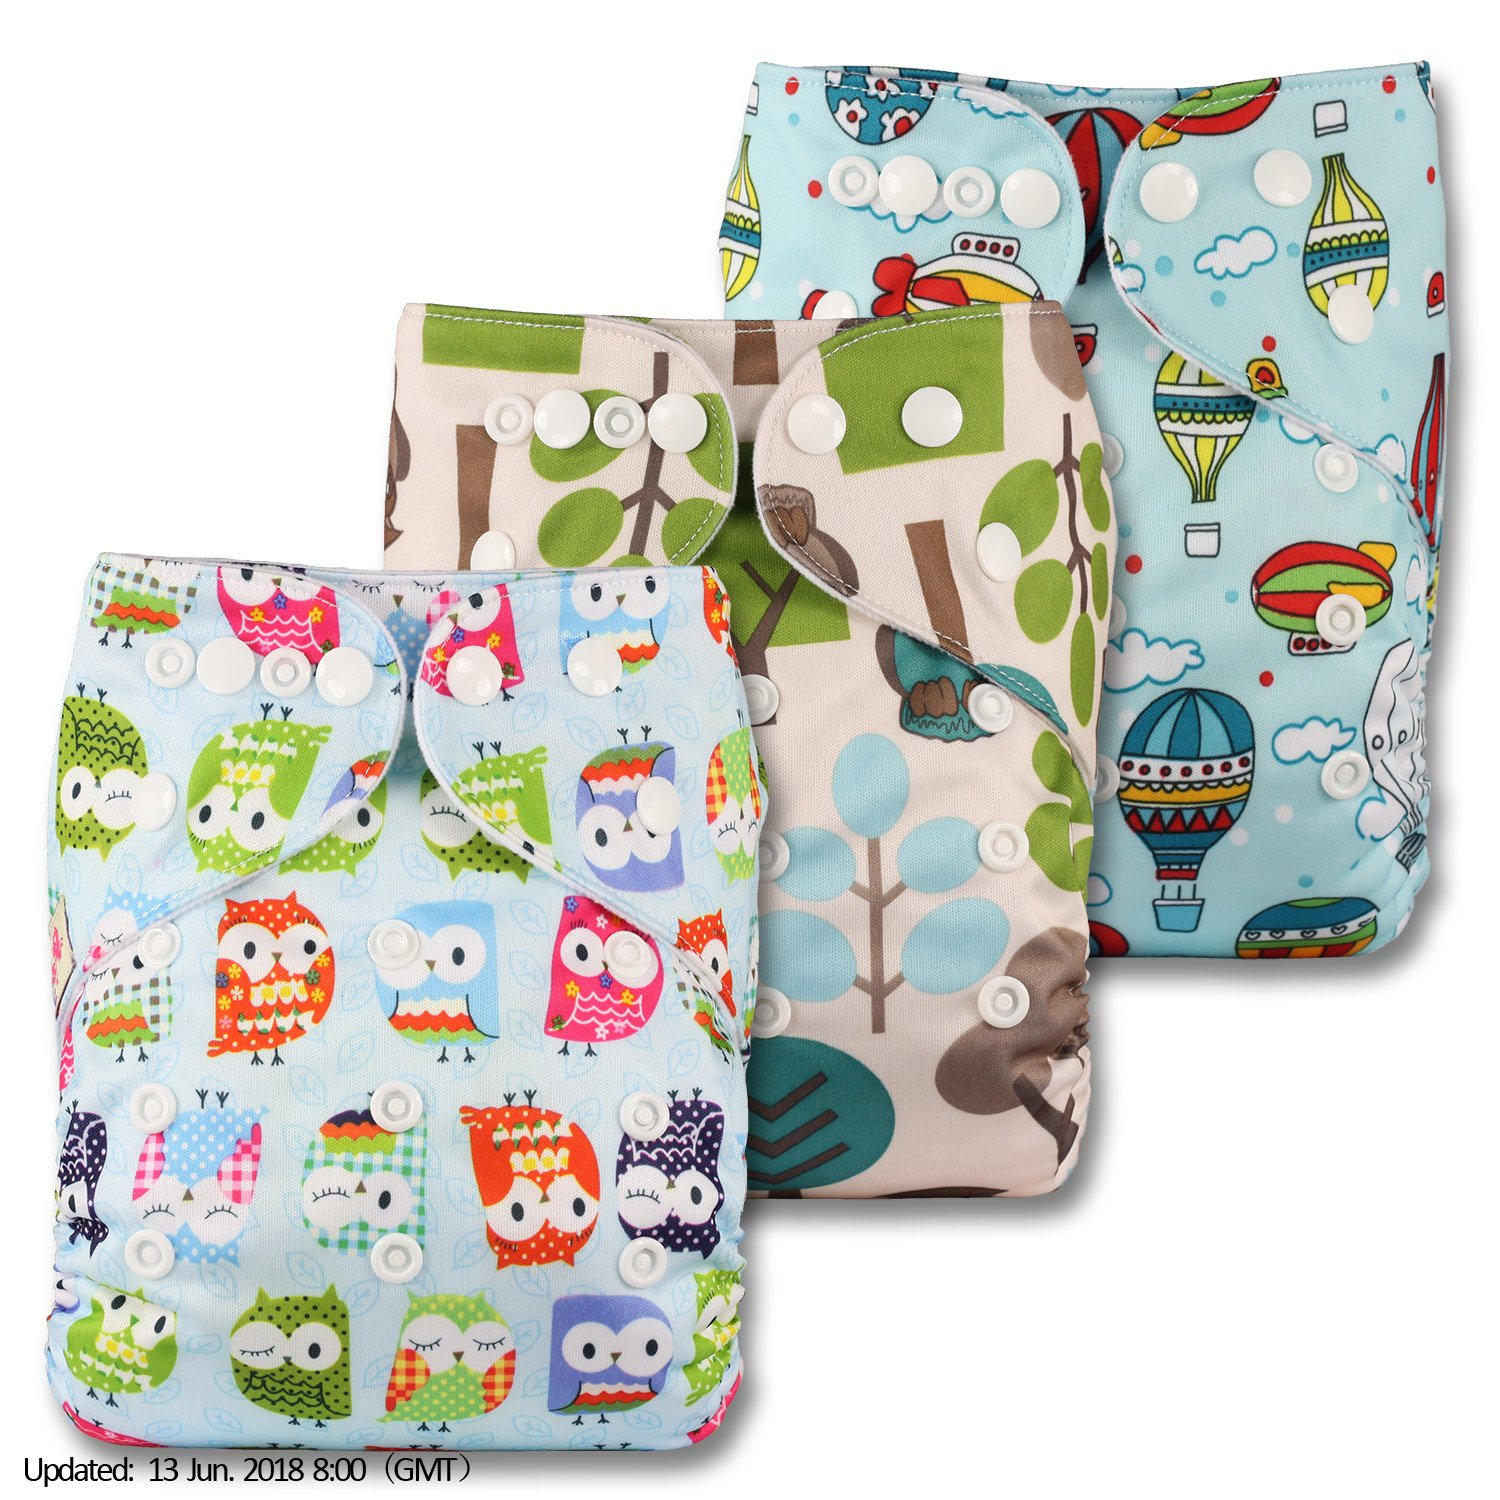 Littles & Bloomz, Reusable Pocket Cloth Nappy, Fastener: Popper, Set of 3, Patterns 303, Without Insert